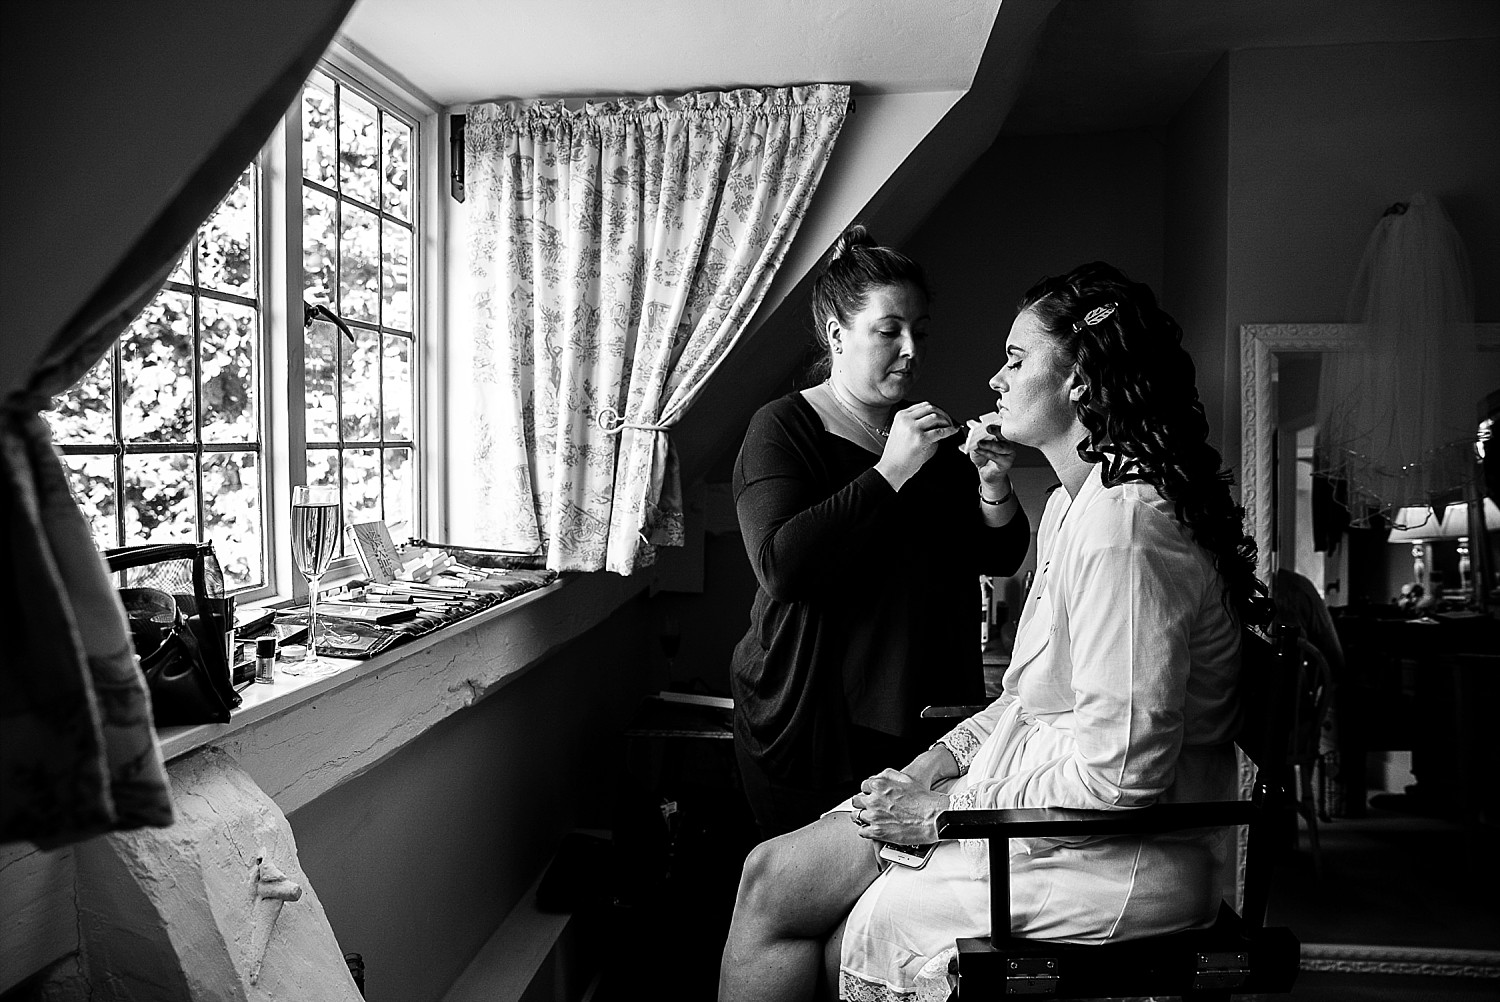 Houchins Wedding Photographer Bridal Preparations